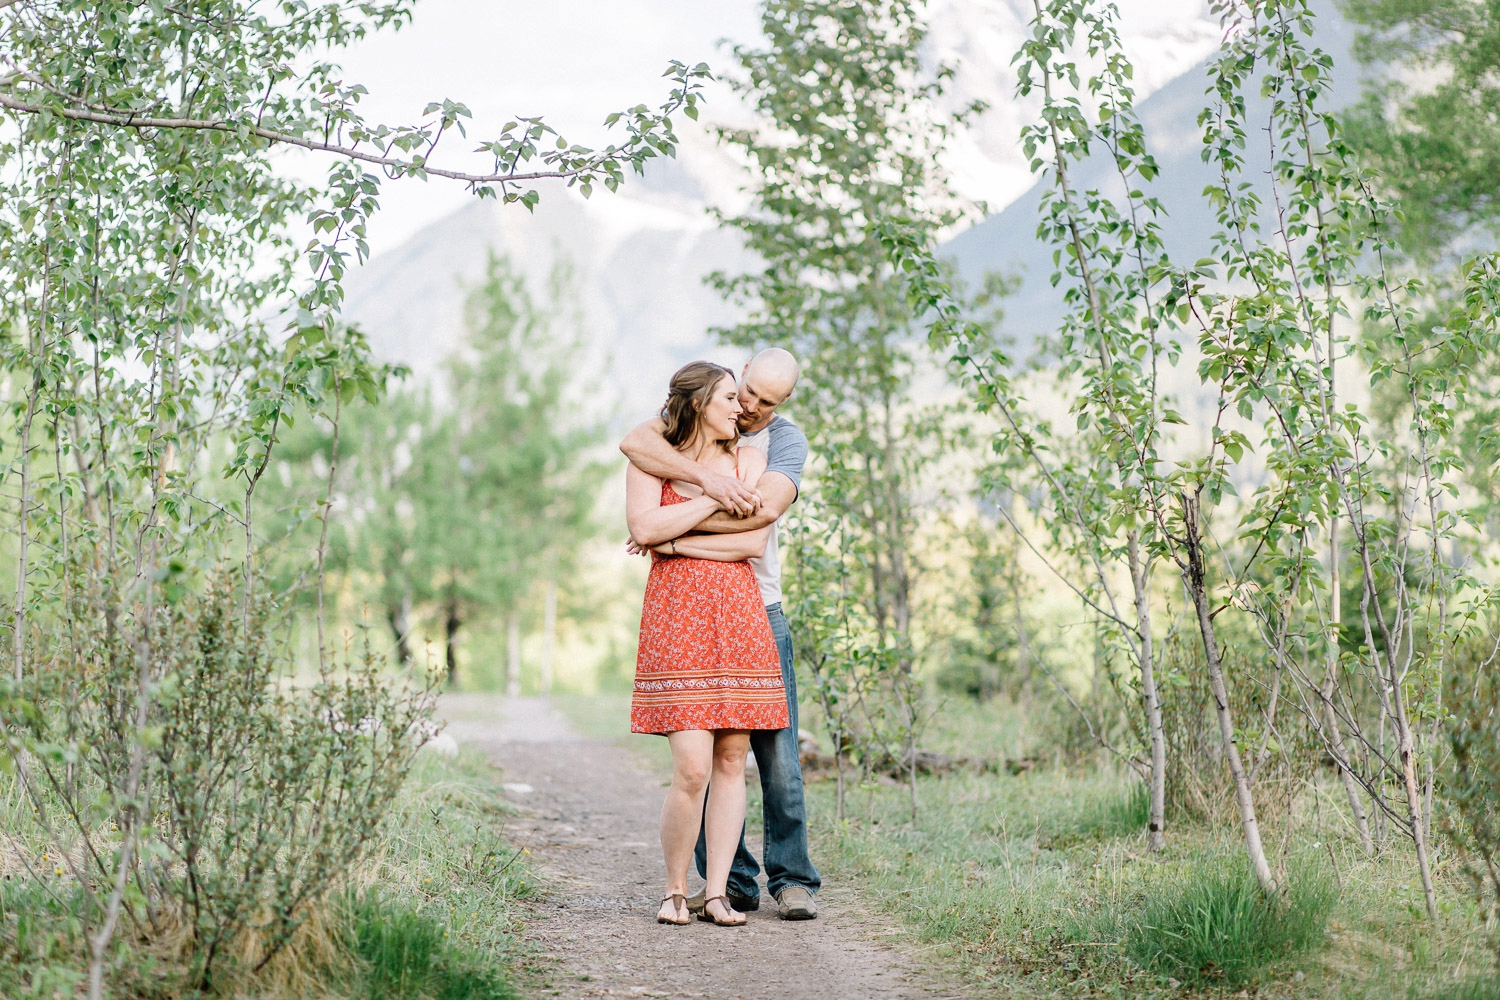 banff wedding photographer - Calgary Wedding Photographer_4589